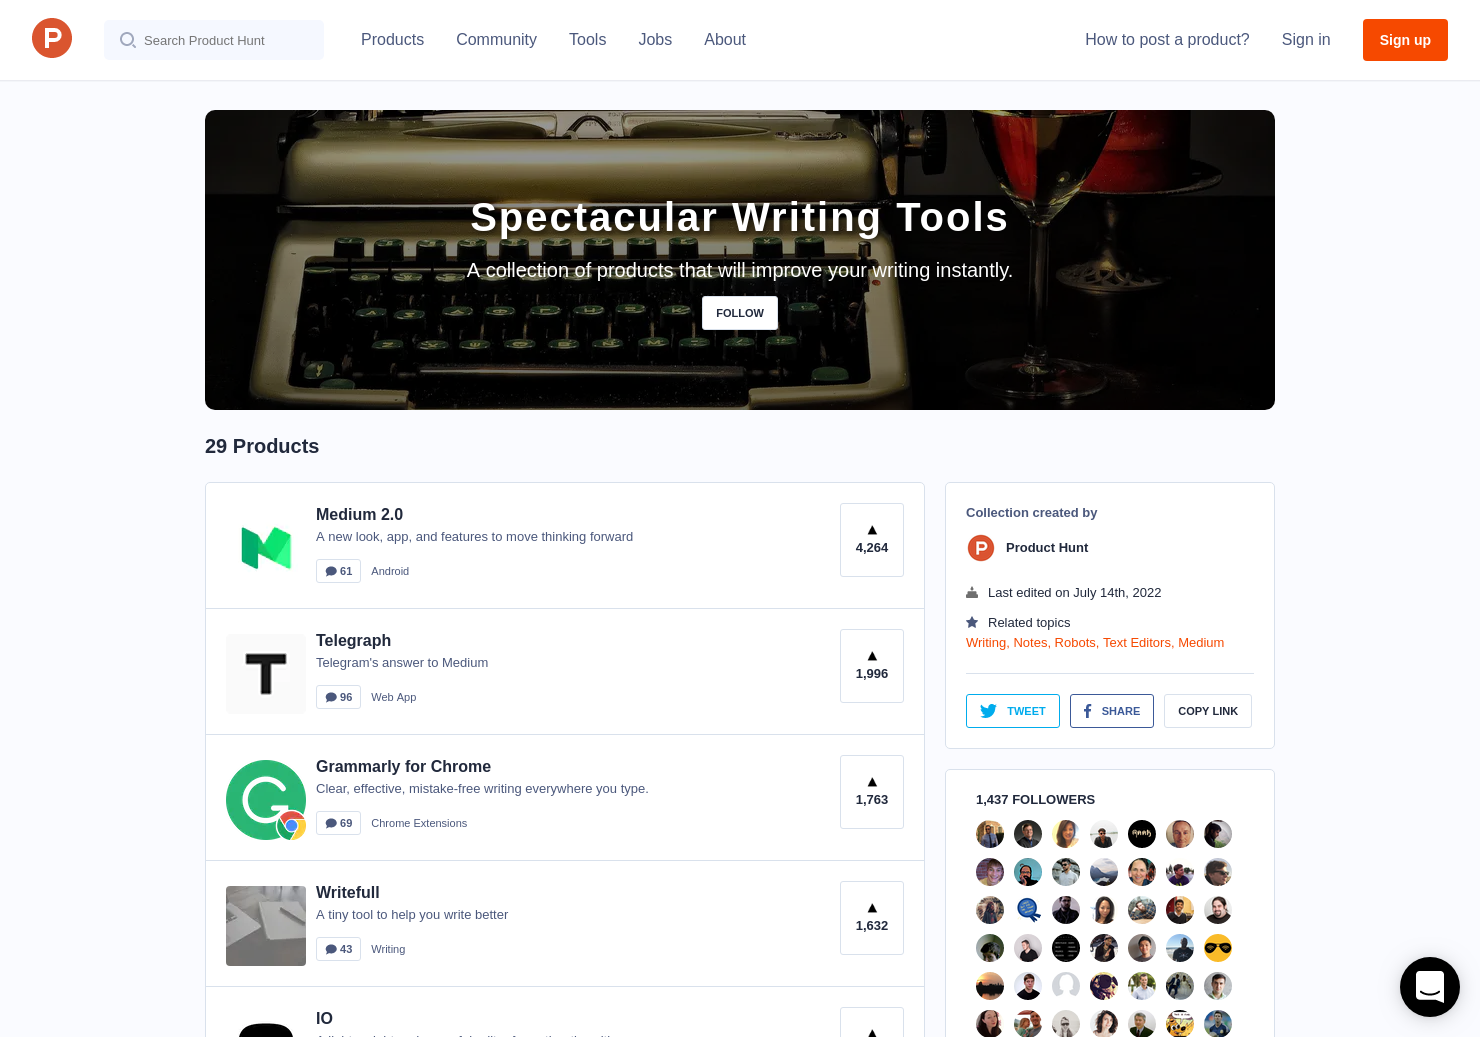 Spectacular Writing Tools